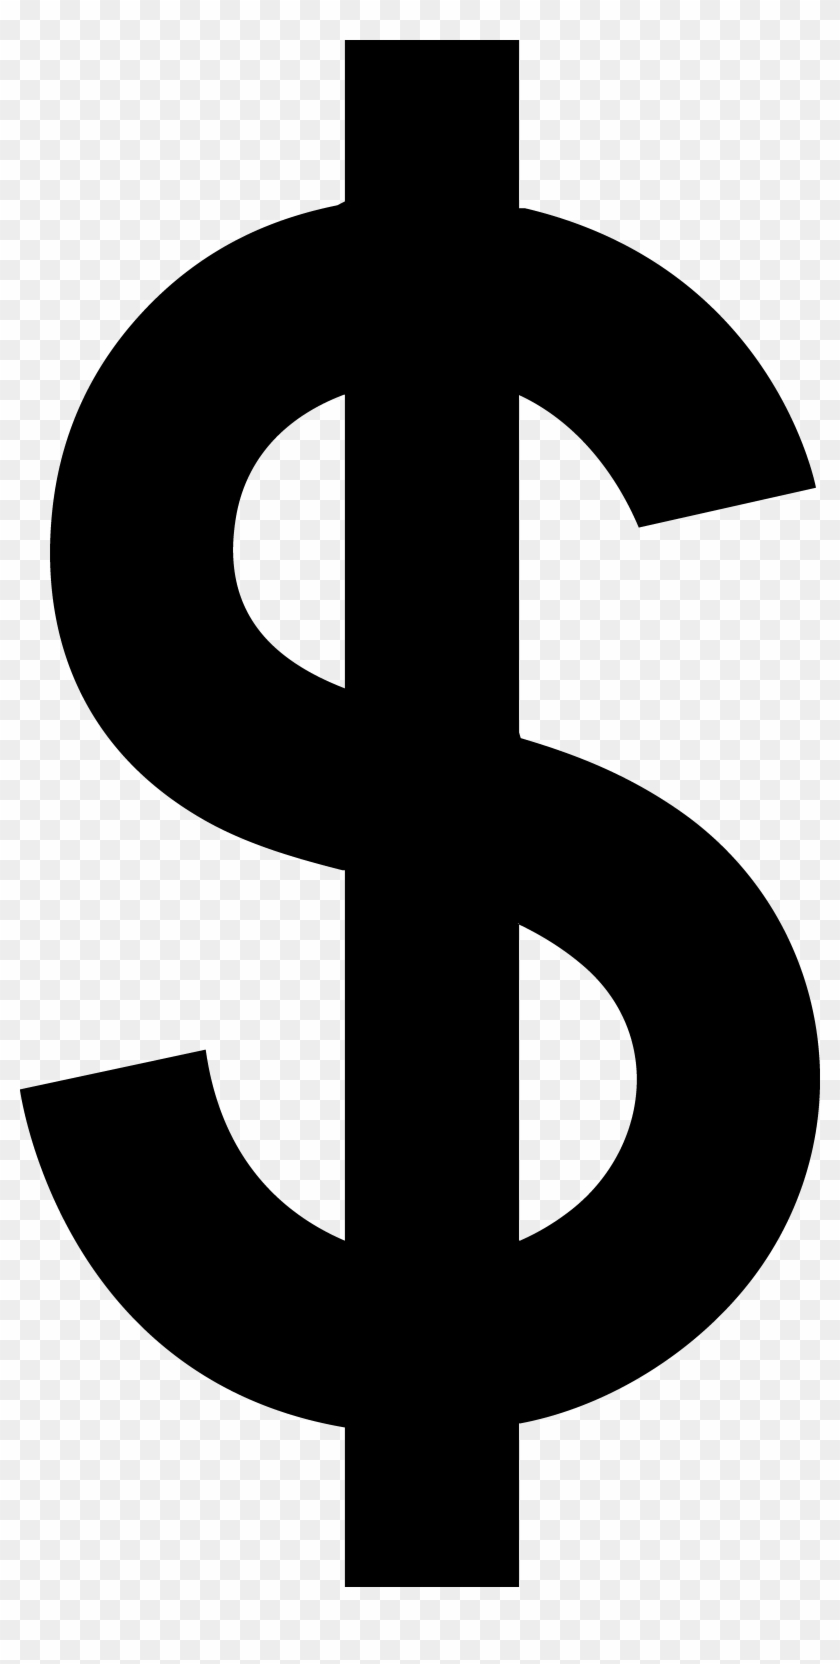 Dollar sign graphic clipart picture transparent library Dollar Sign Logo Png Images Free Download Graphic - Dollar Sign ... picture transparent library